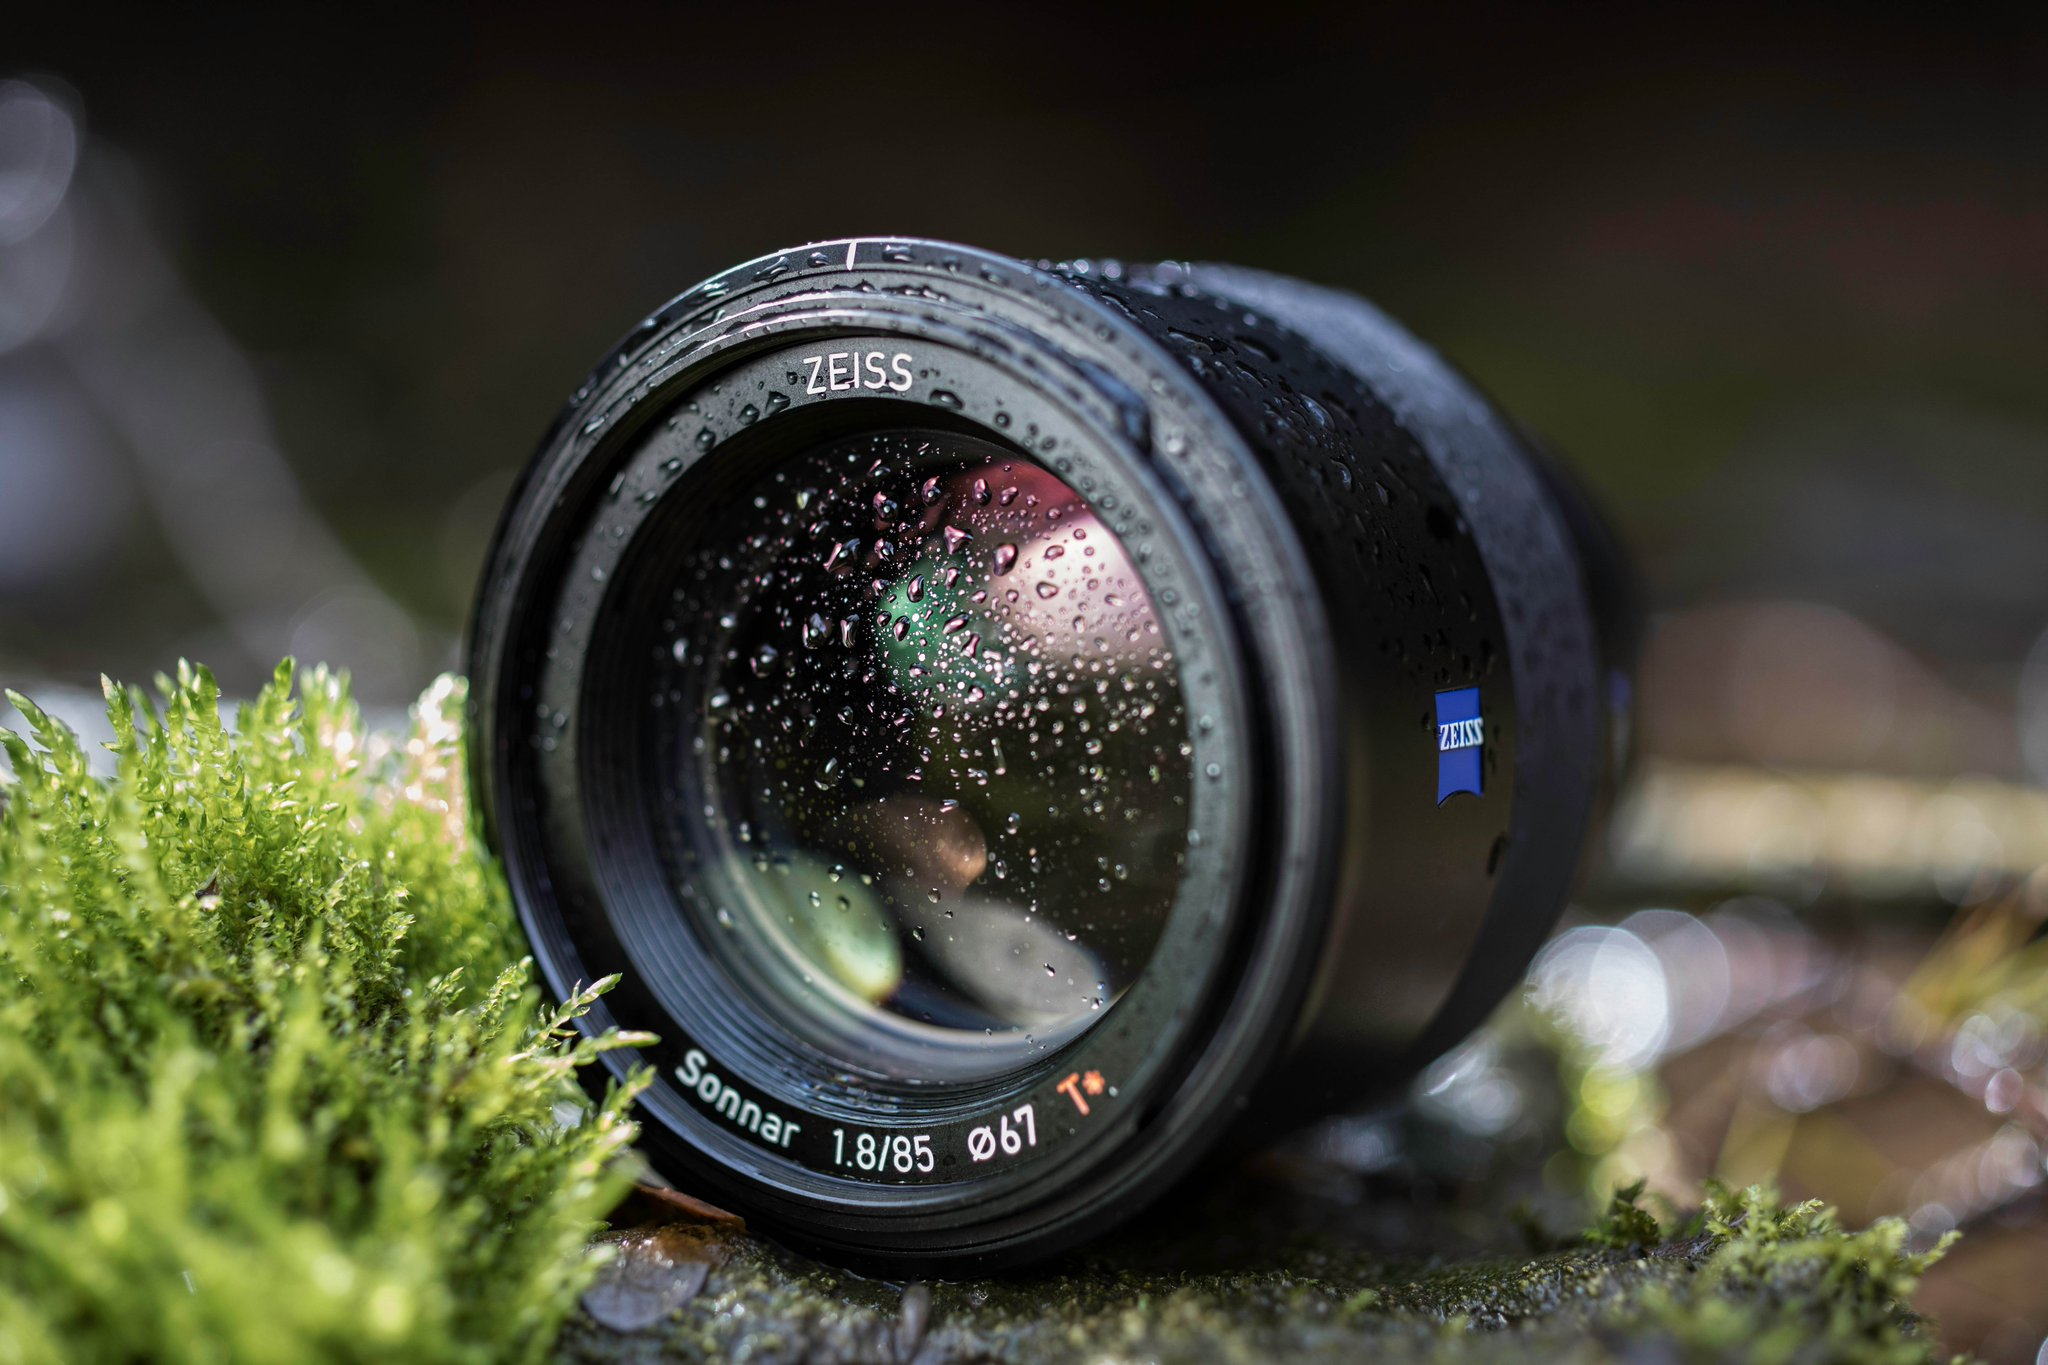 Look who forgot to bring an umbrella! ☂️ No problem for our robust and weatherproof #ZEISSBatis 1.8/85. With the help of optical image stabilization, this lens can be used for hand-held shooting even in poor light conditions during rainy and cloudy weather. 🌧️ #Batis #ZEISS https://t.co/lLJtUNtVud